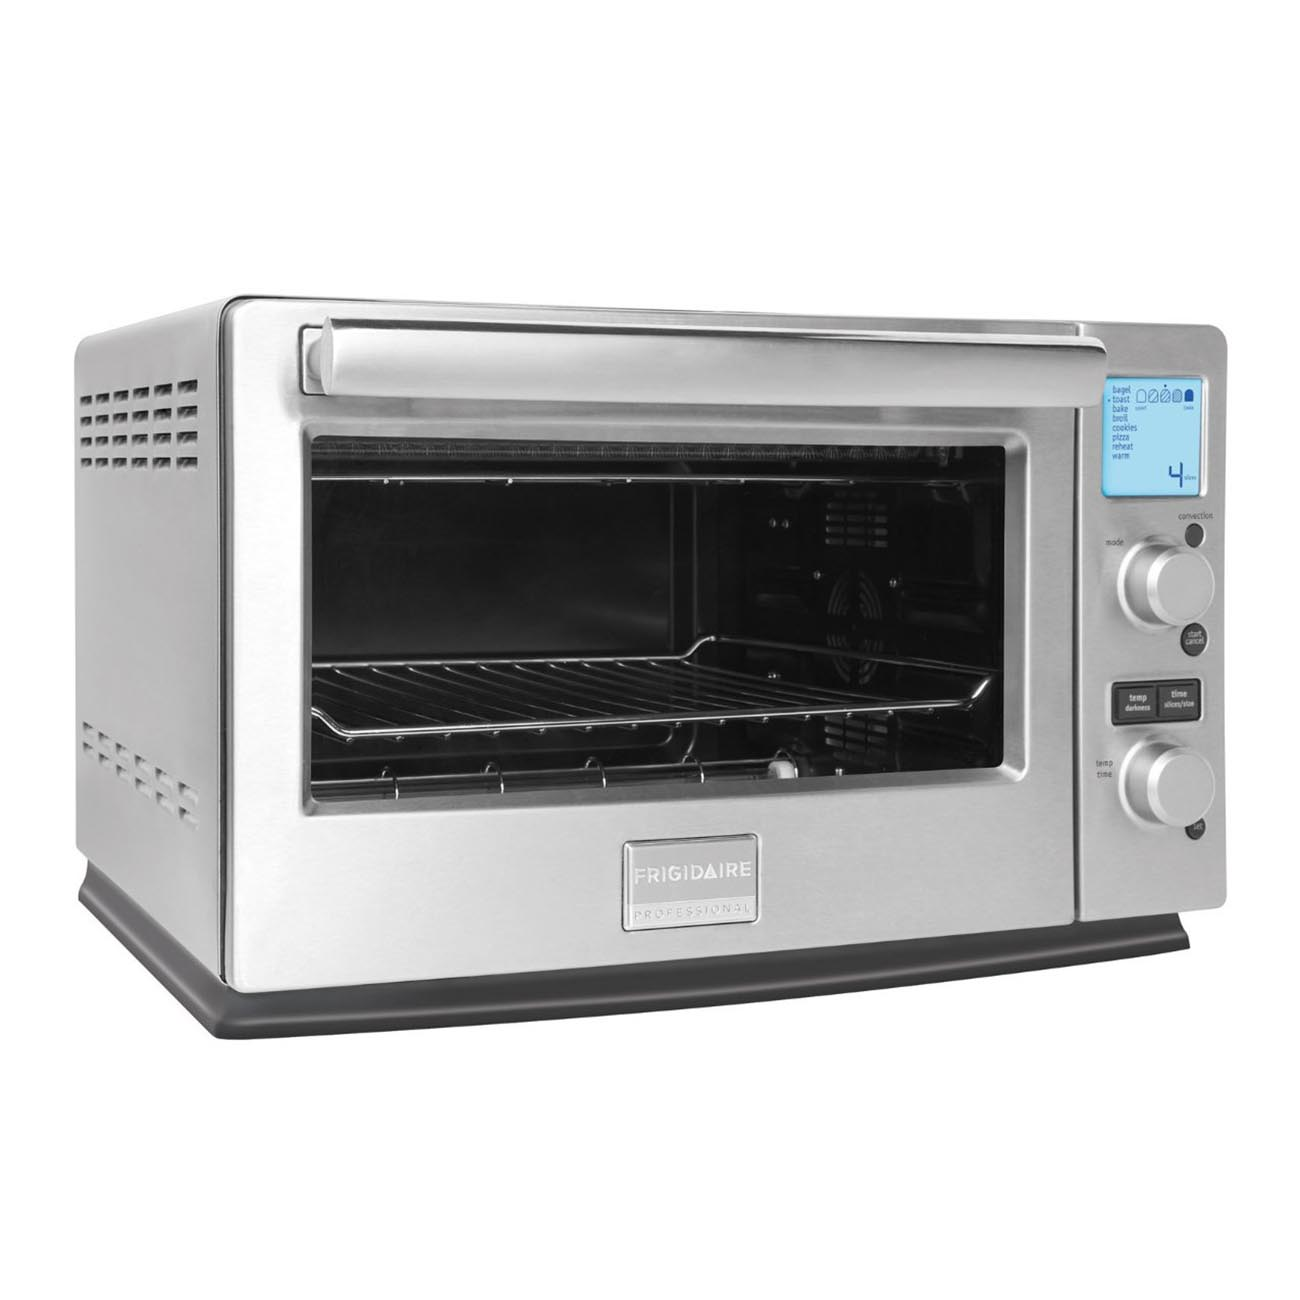 Frigidaire 6 Slice Stainless Convection Toaster Oven 4